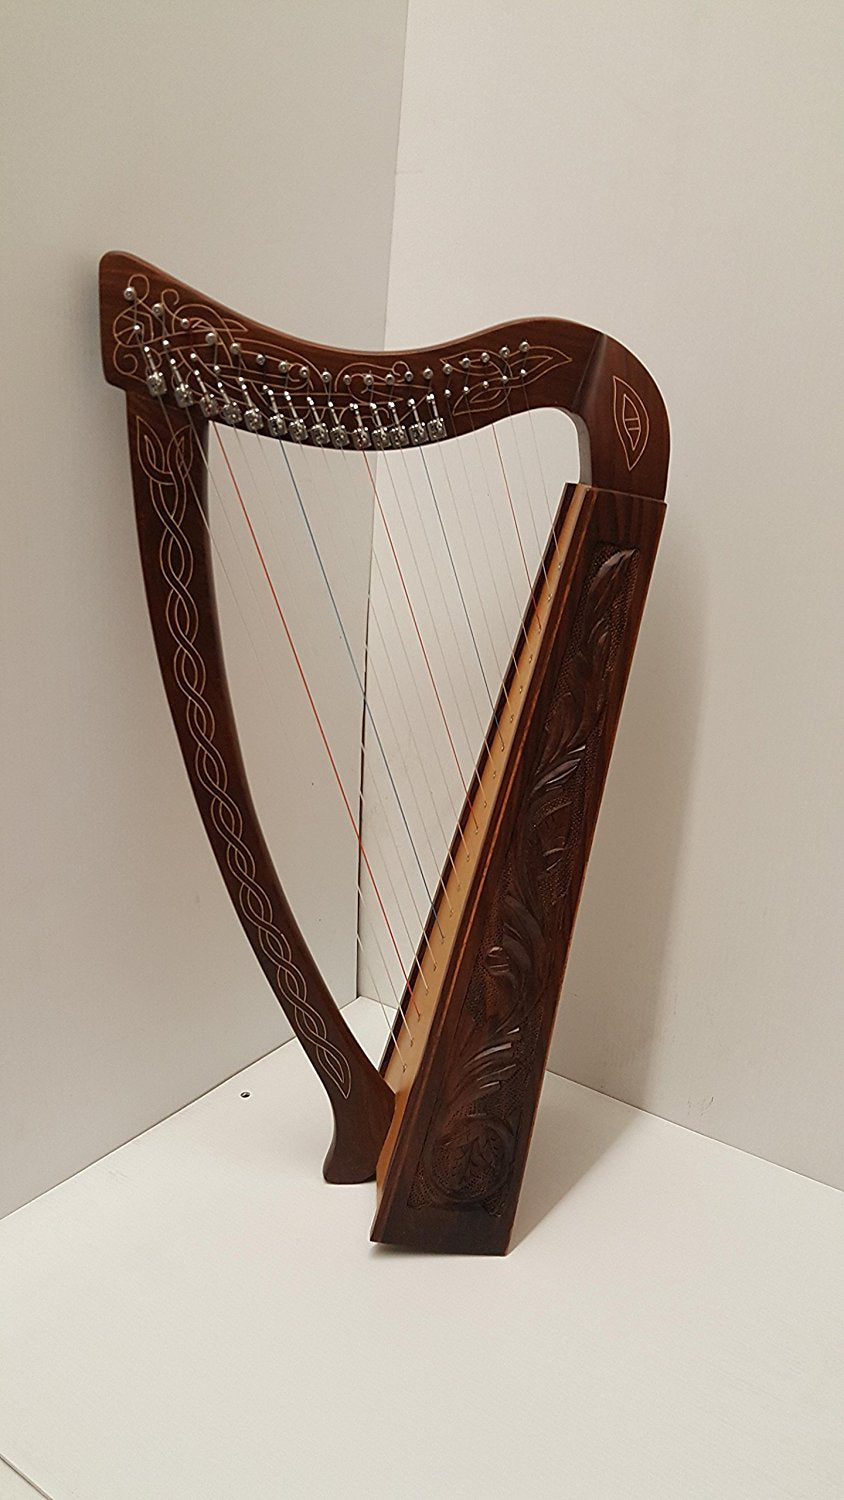 Tall Celtic Irish Rose Harp 22 Strings Solid Wood with hand Engraved Styles-STURGIS MIDWEST INC.